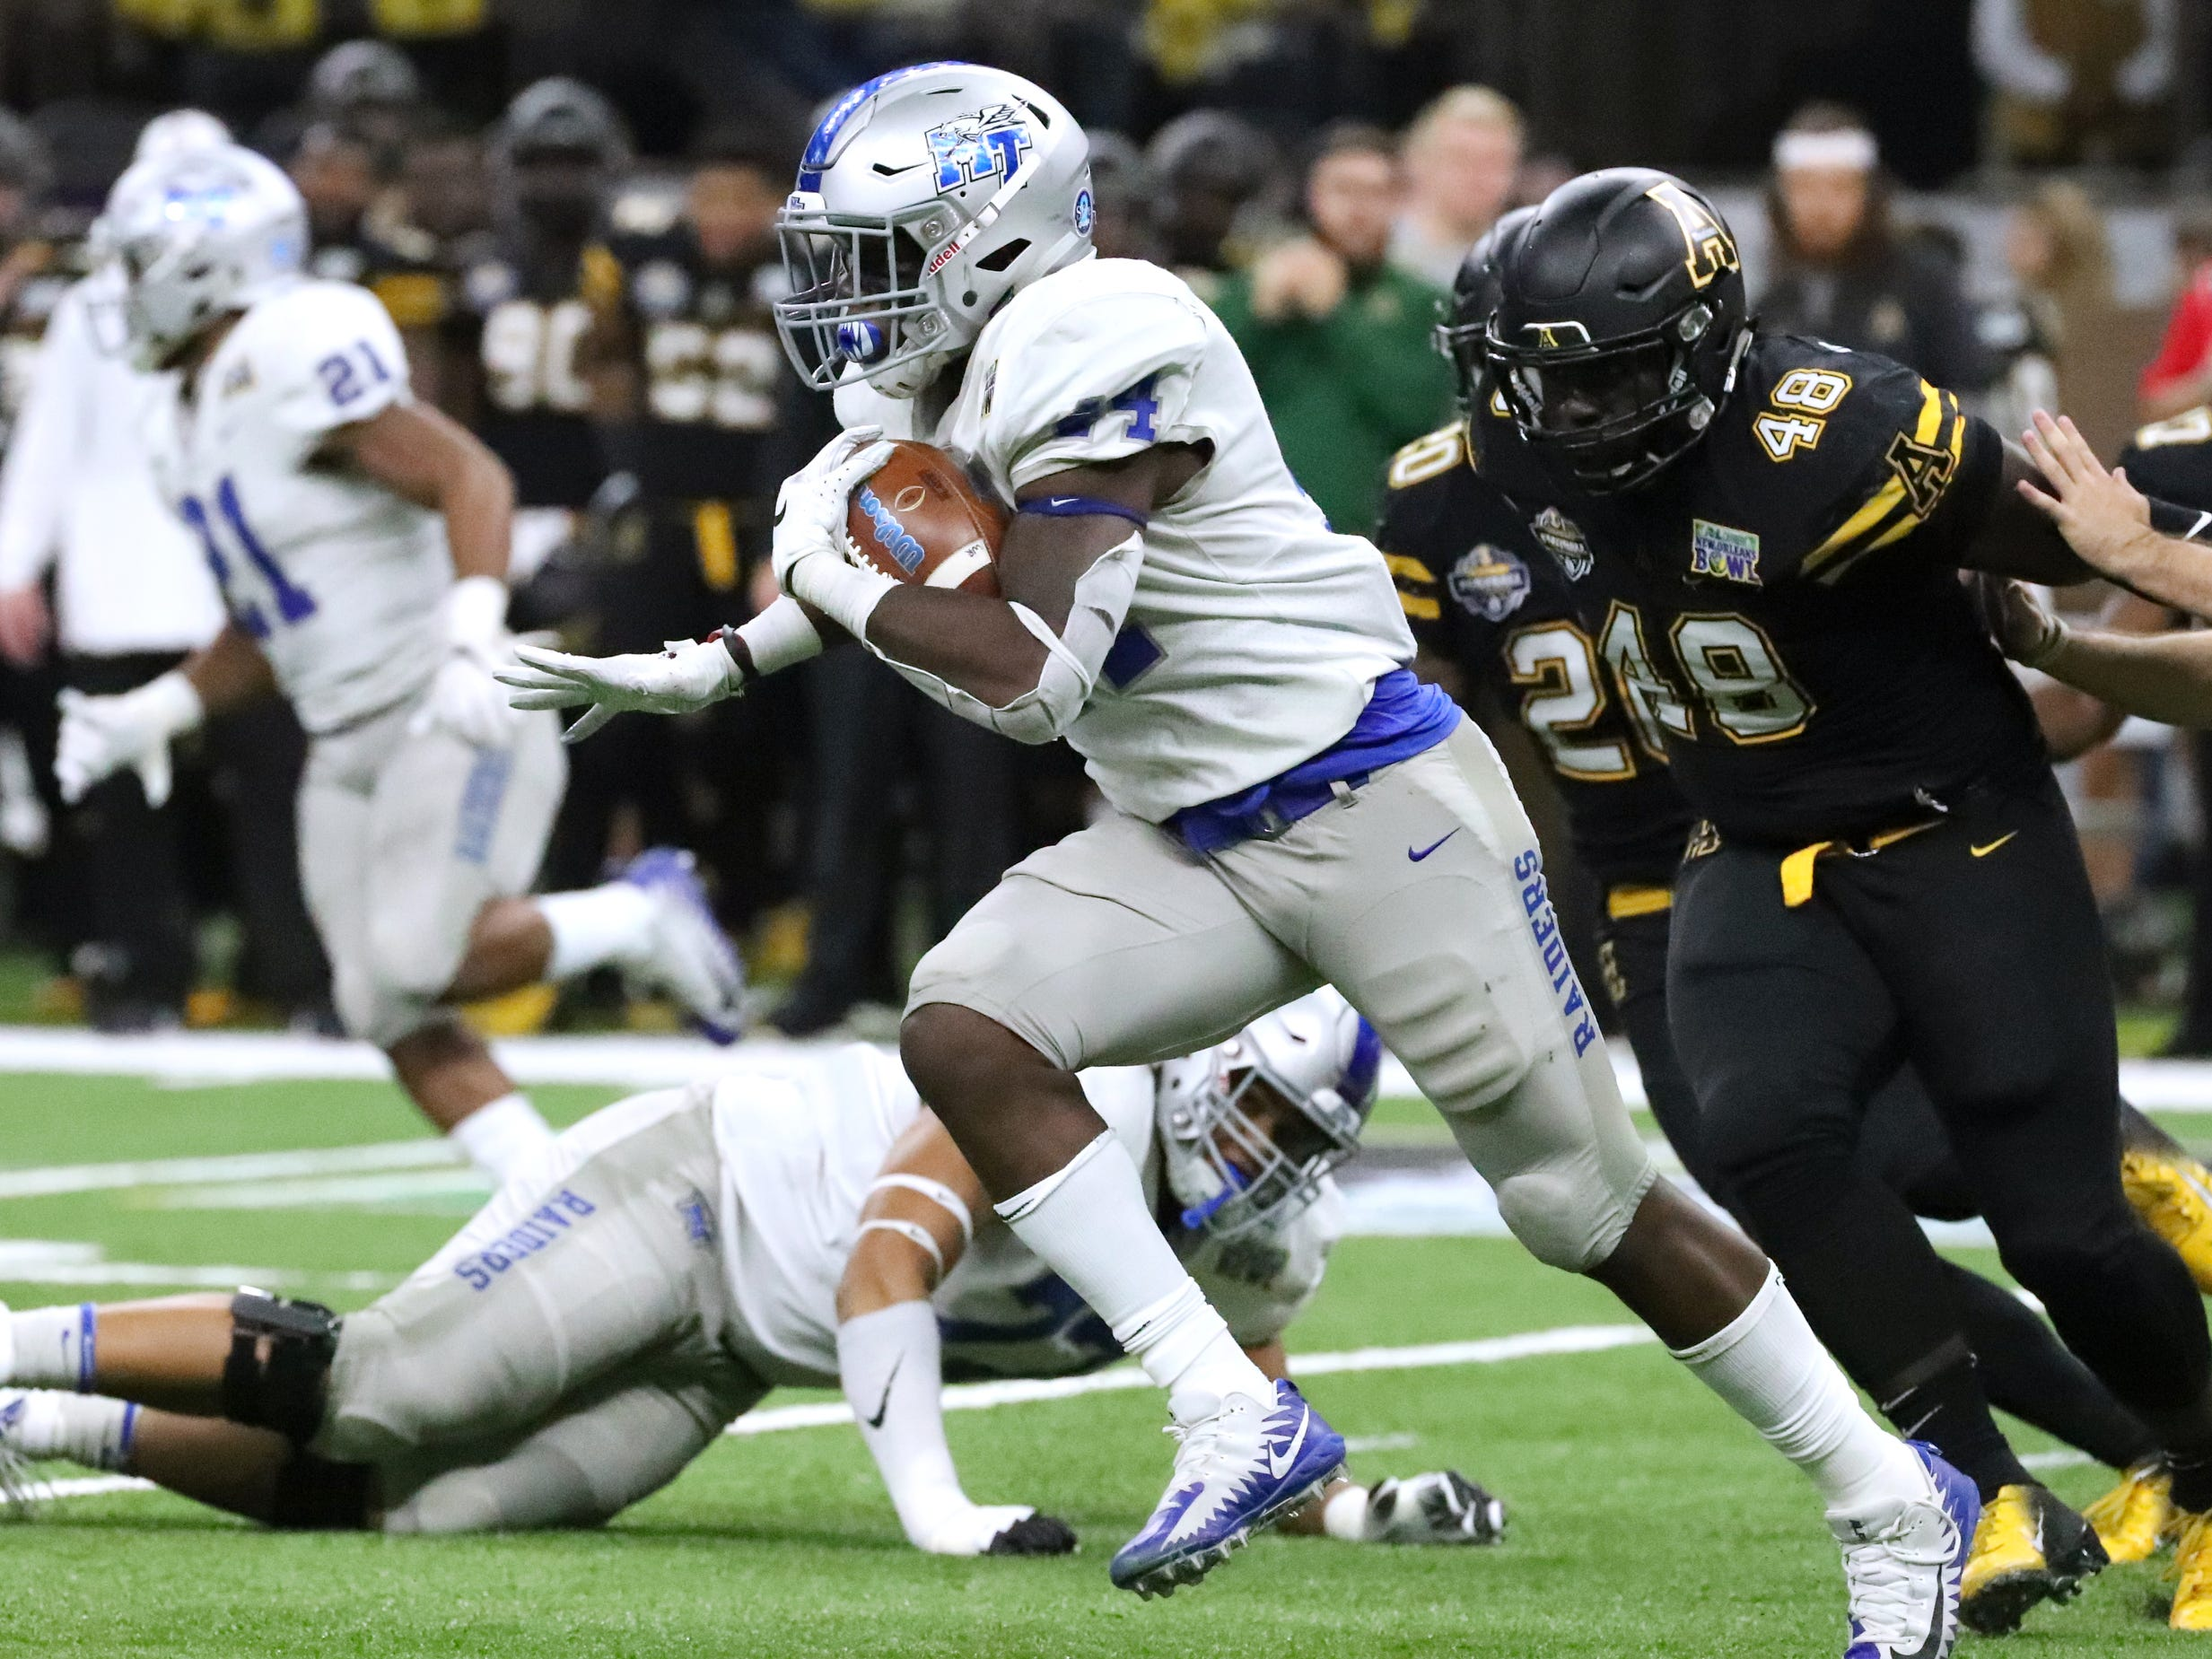 Middle Tennessee Blue Raiders running back Chaton Mobley (44) runs the ball as Appalachian State Mountaineers defensive lineman Demetrius Taylor (48) comes up from behind on Saturday, Dec. 15, 2018, during the New Orleans Bowl.